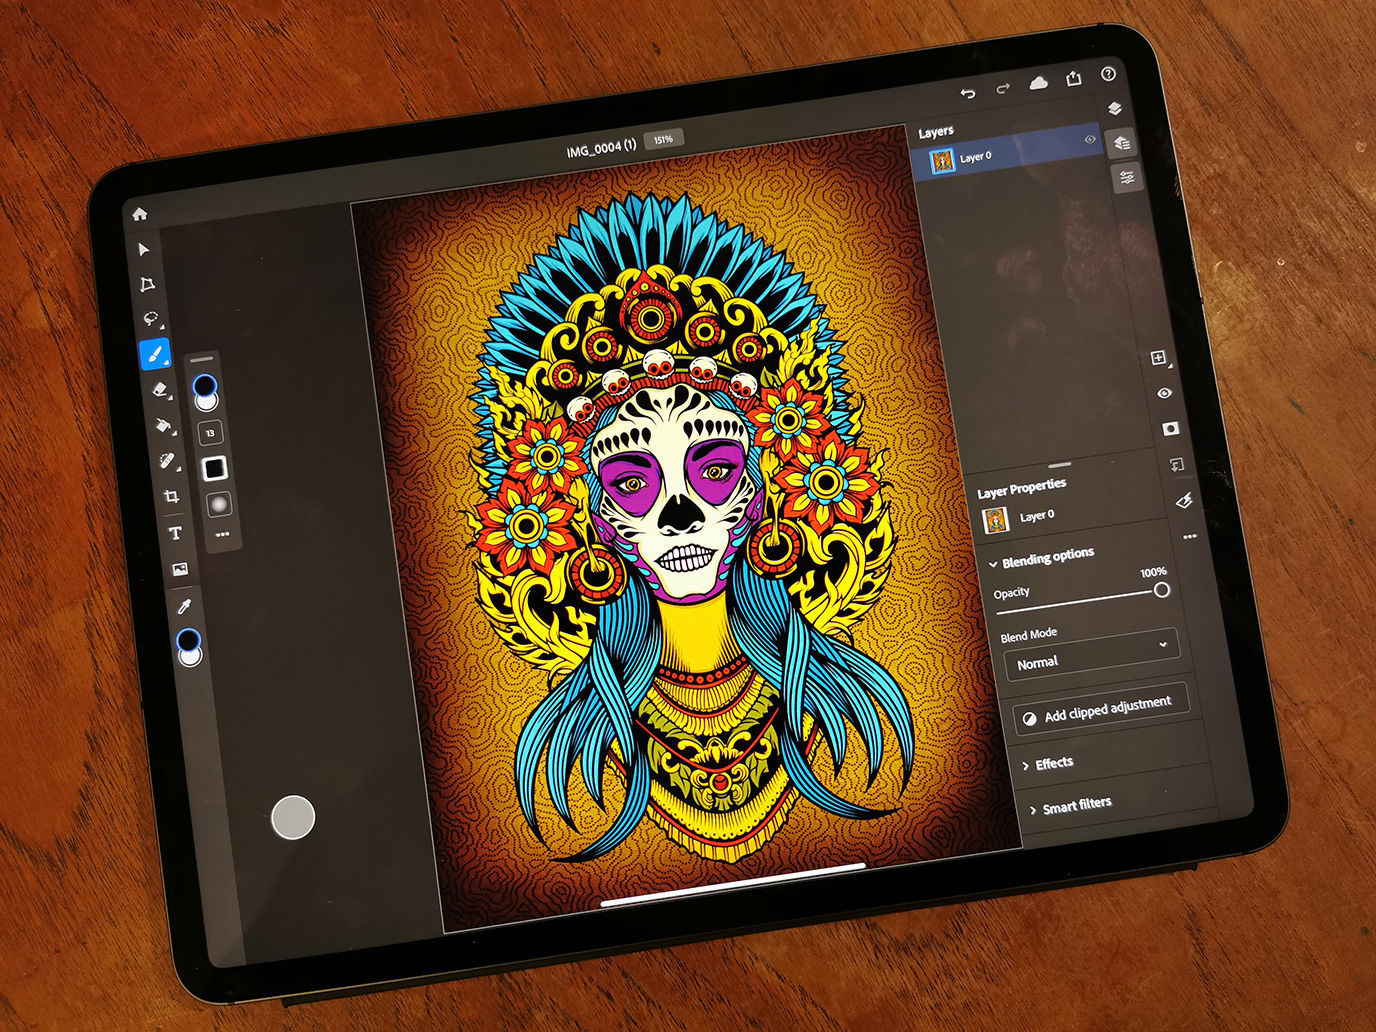 Adobe announces suite of updates to Photoshop, Lightroom